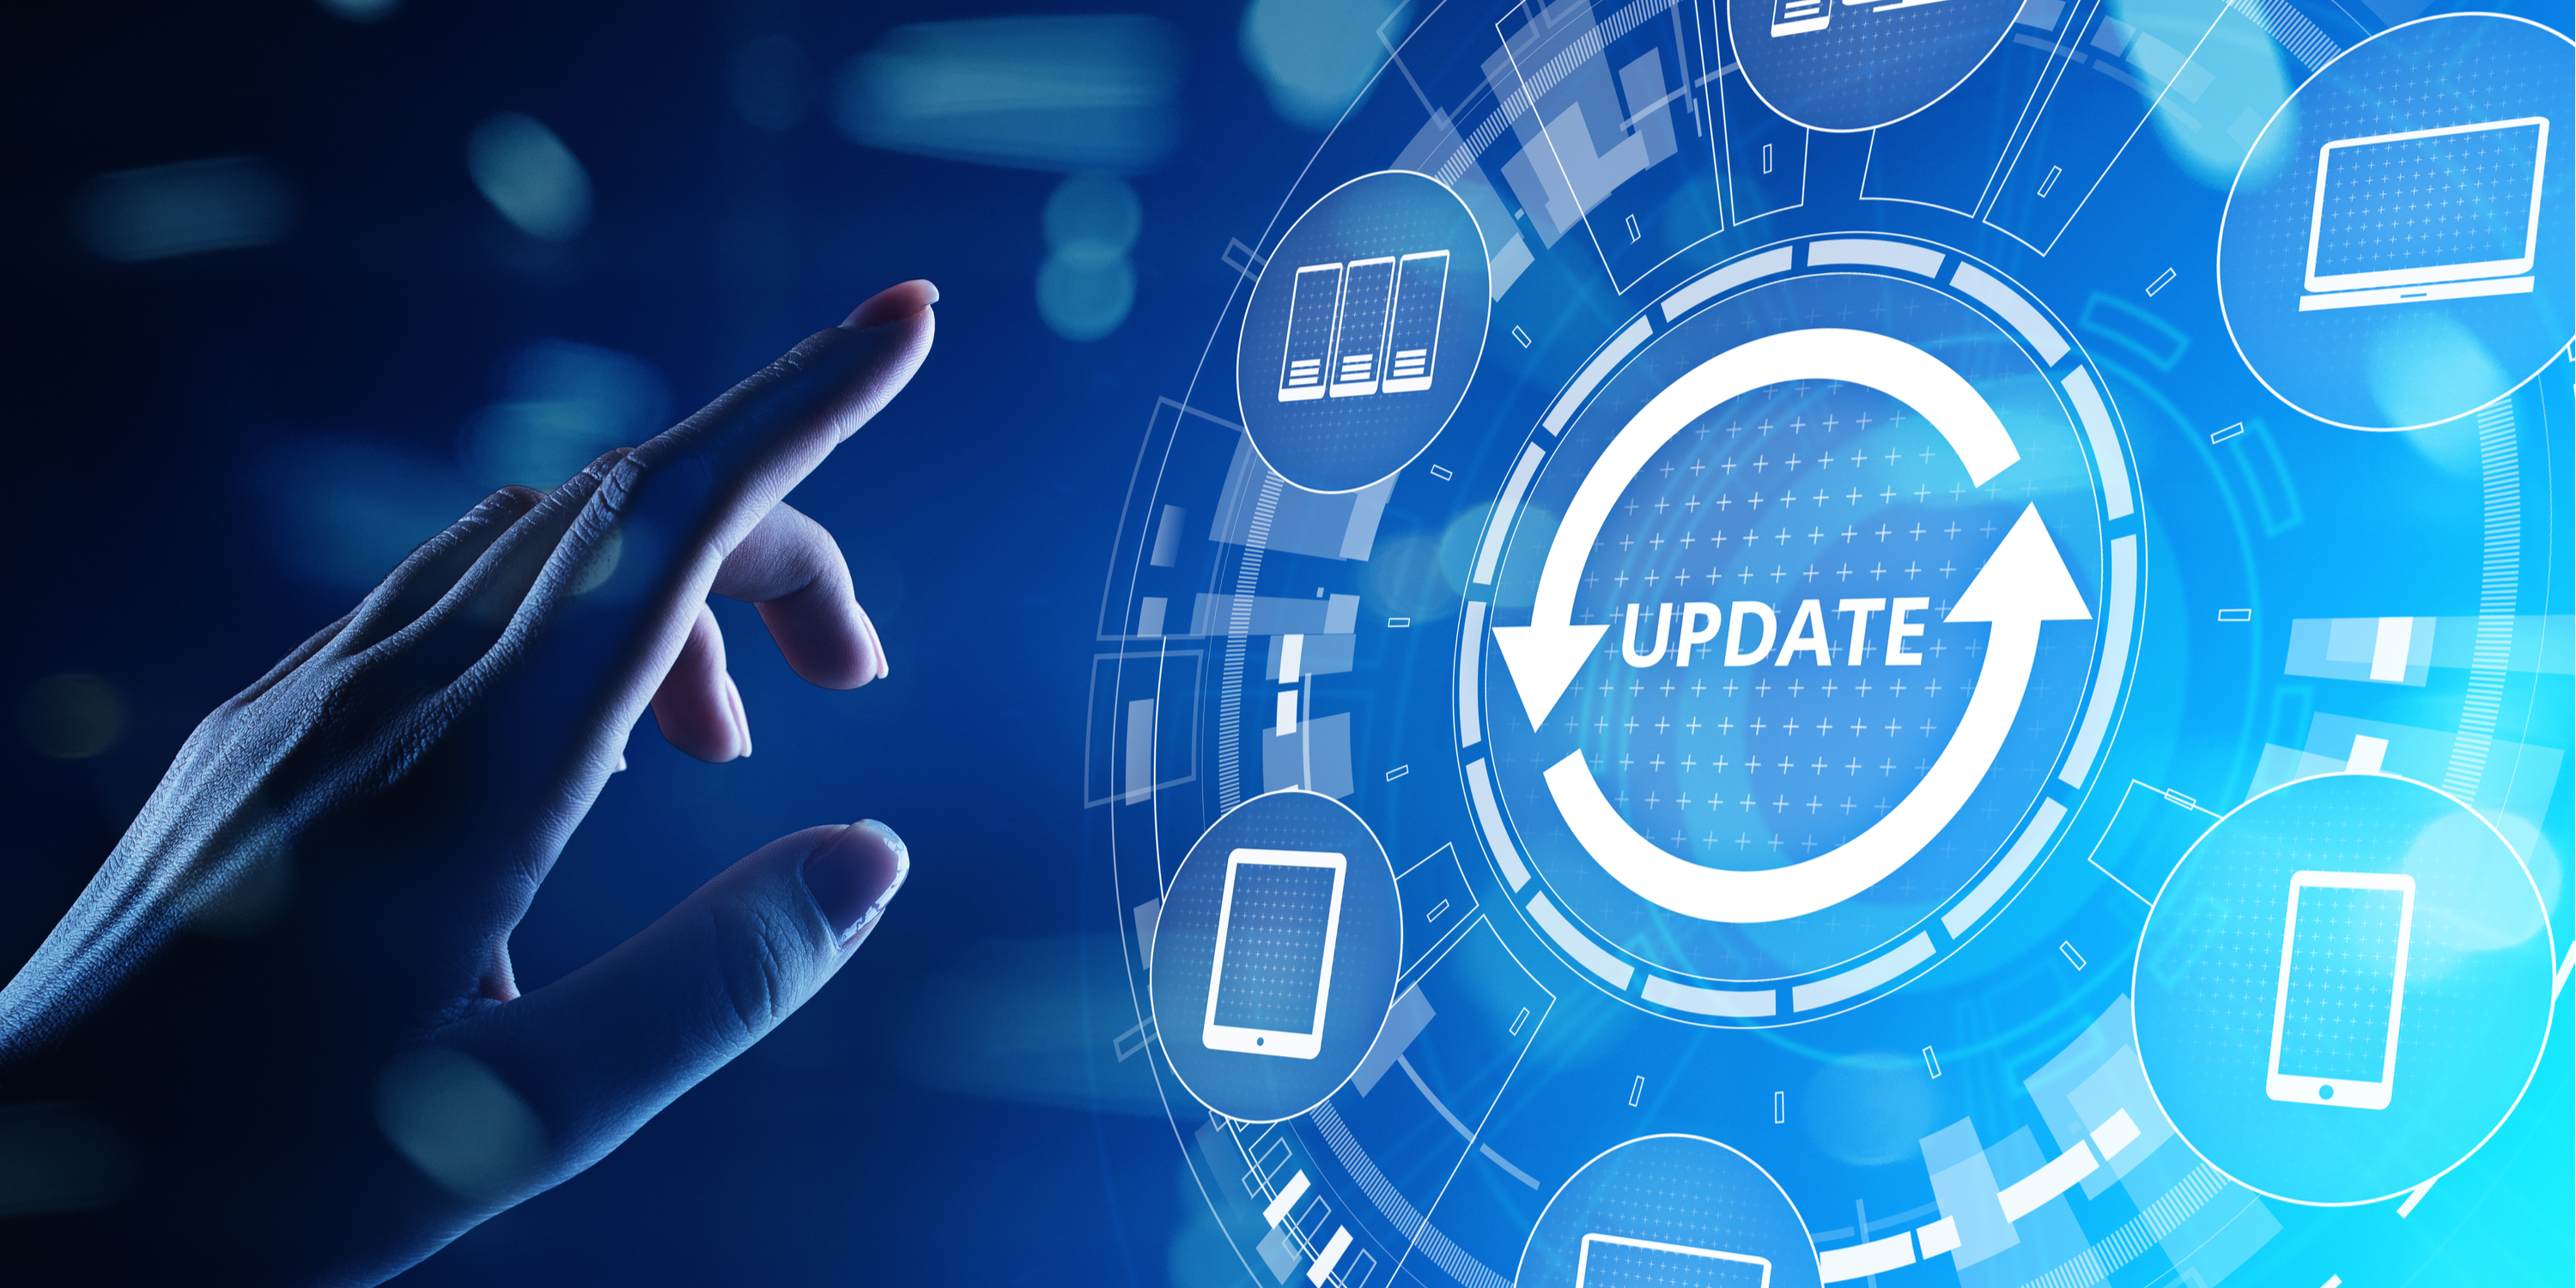 Service changes and updates at IRD